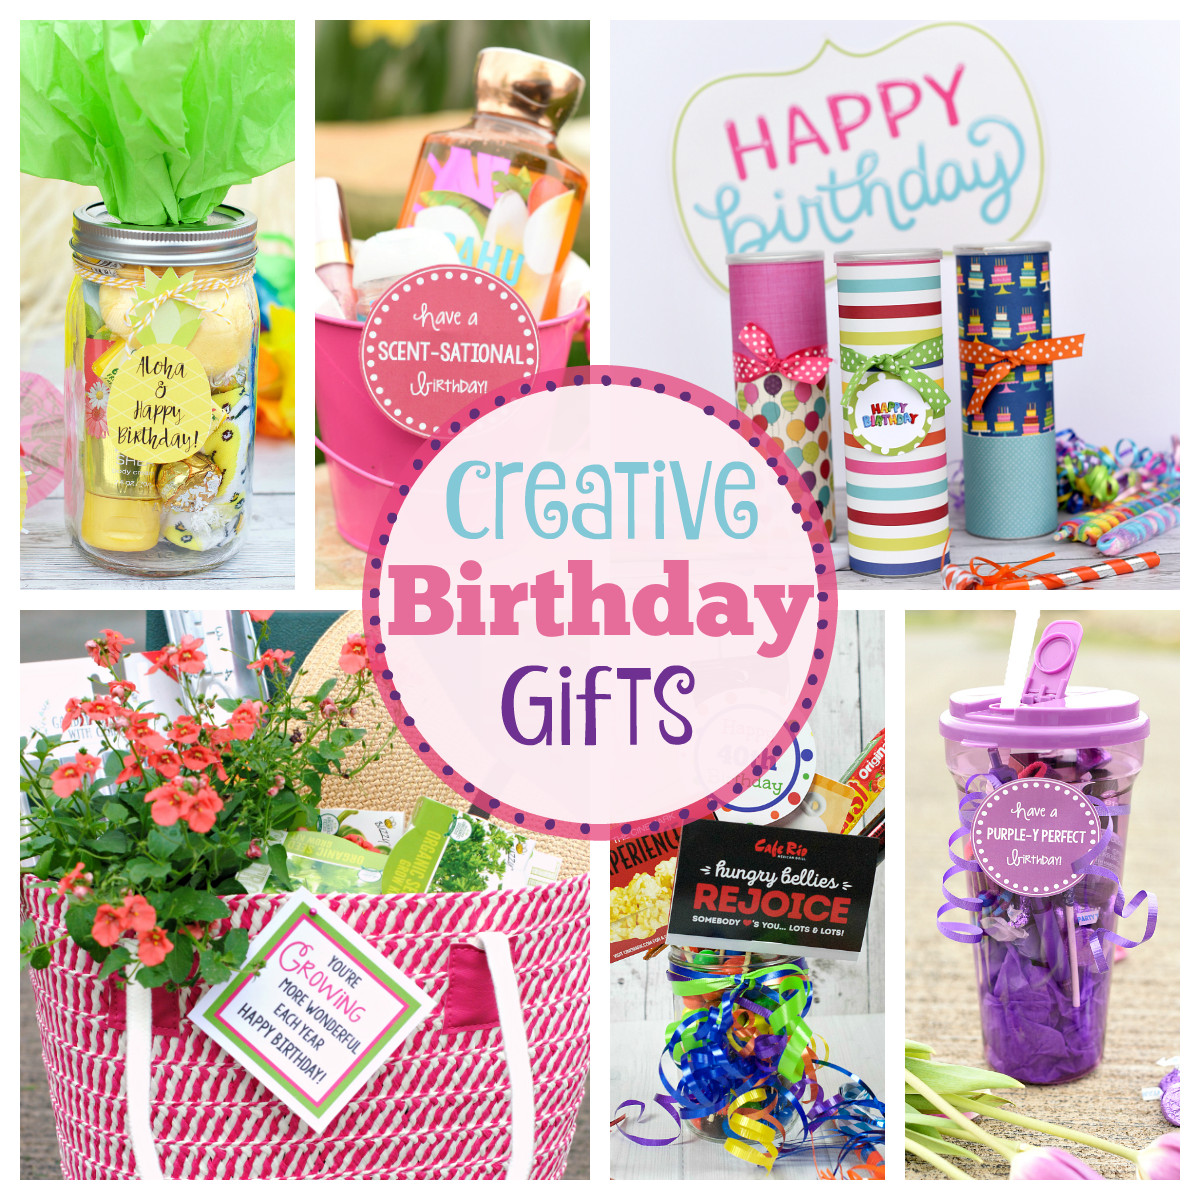 Clever Birthday Gifts  25 Fun Birthday Gifts Ideas for Friends Crazy Little